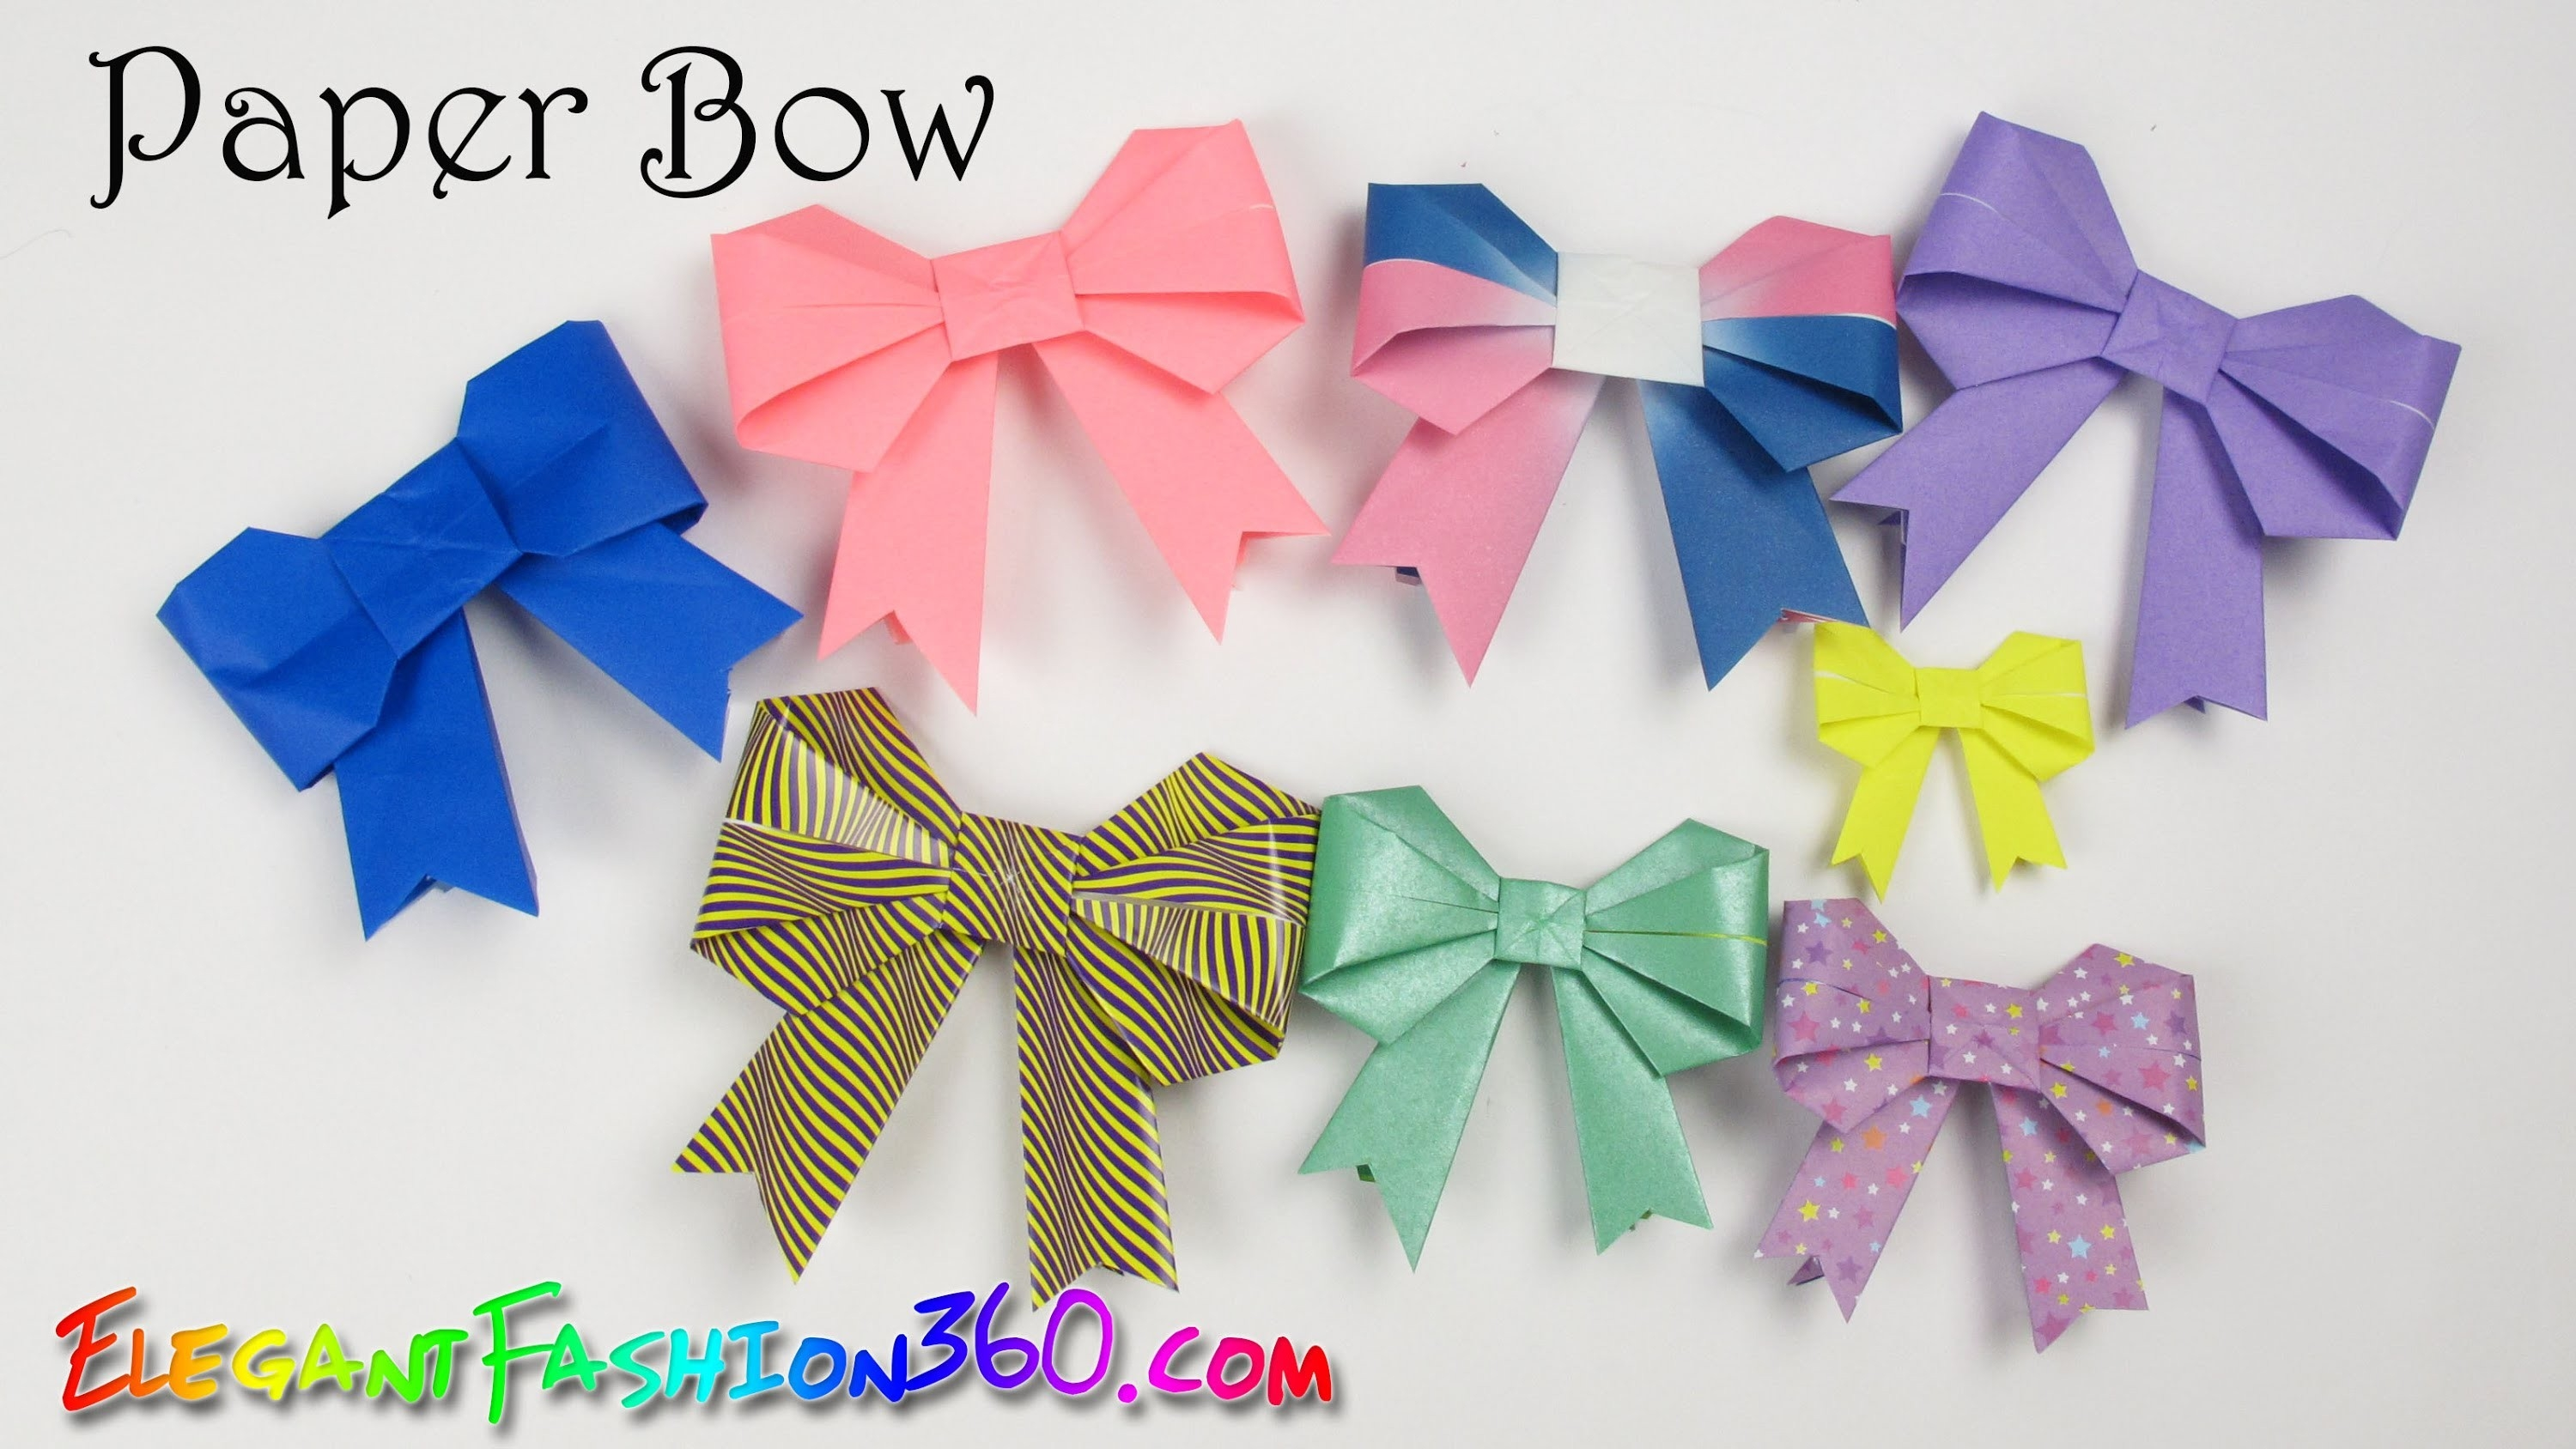 Diy Paper Crafts: Paper Bow/ribbon Cute And Easy - How To Origami in How To Make Cute Paper Crafts 26915